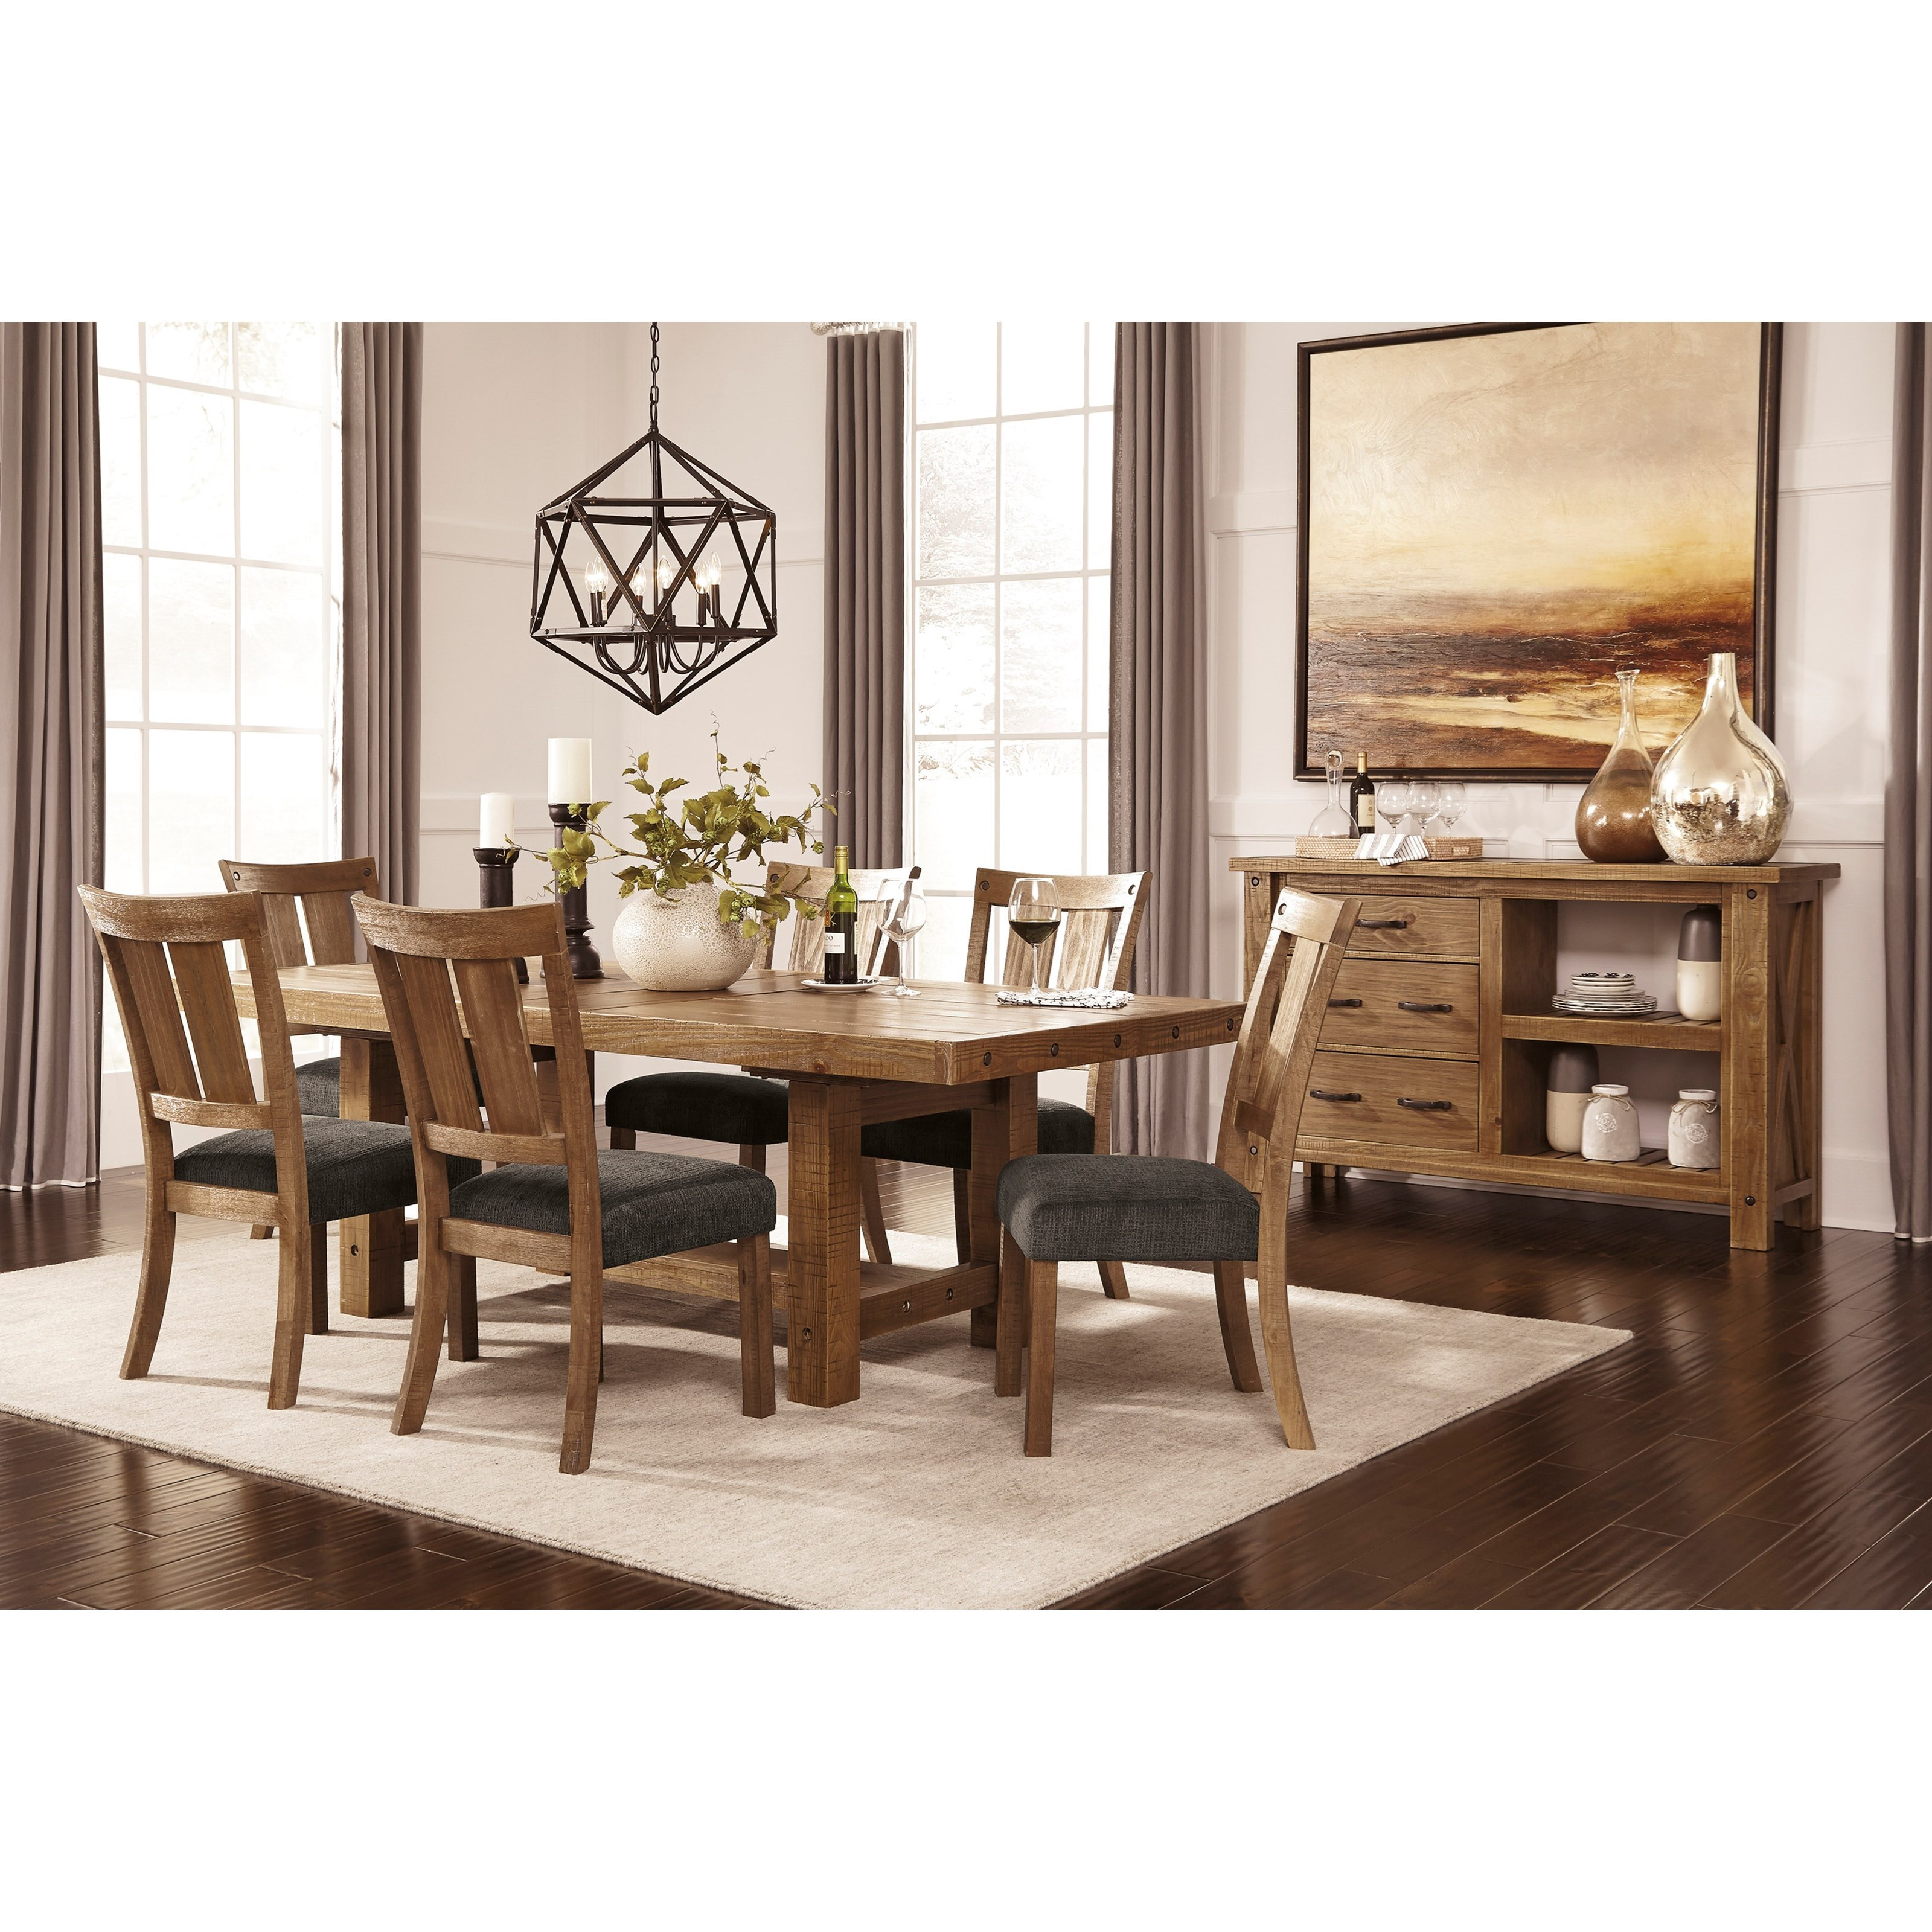 Signature design by ashley tamilo rectangle dining room for Dining room leaf